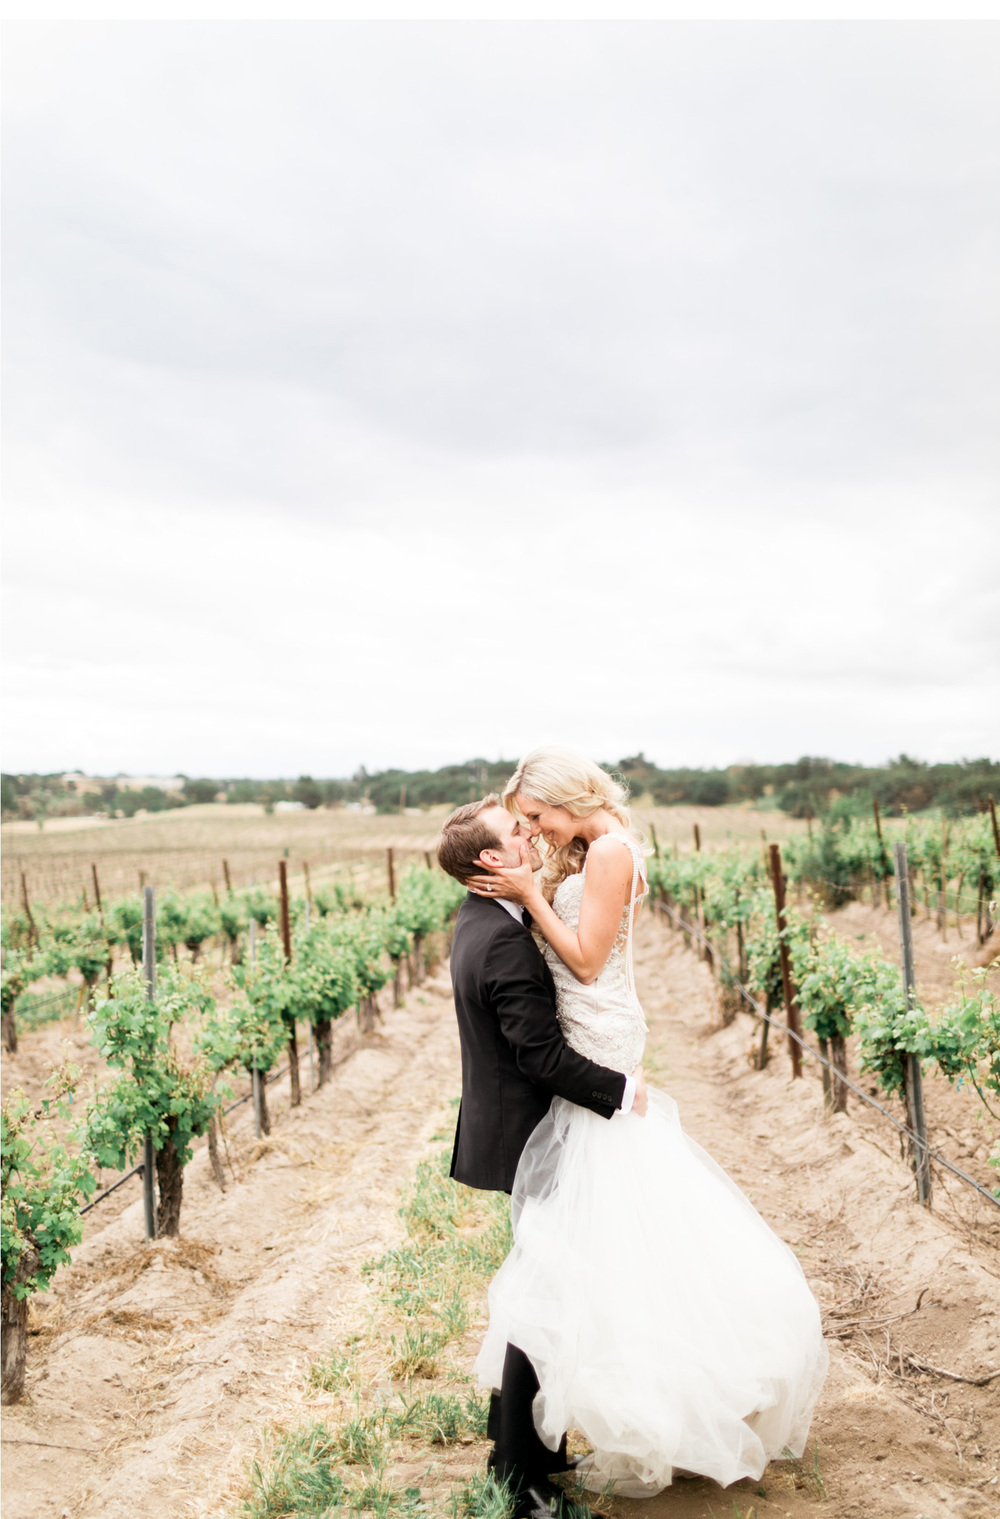 Style-Me-Pretty-Vineyard-Wedding-Natalie-Schutt-Photography_13.jpg